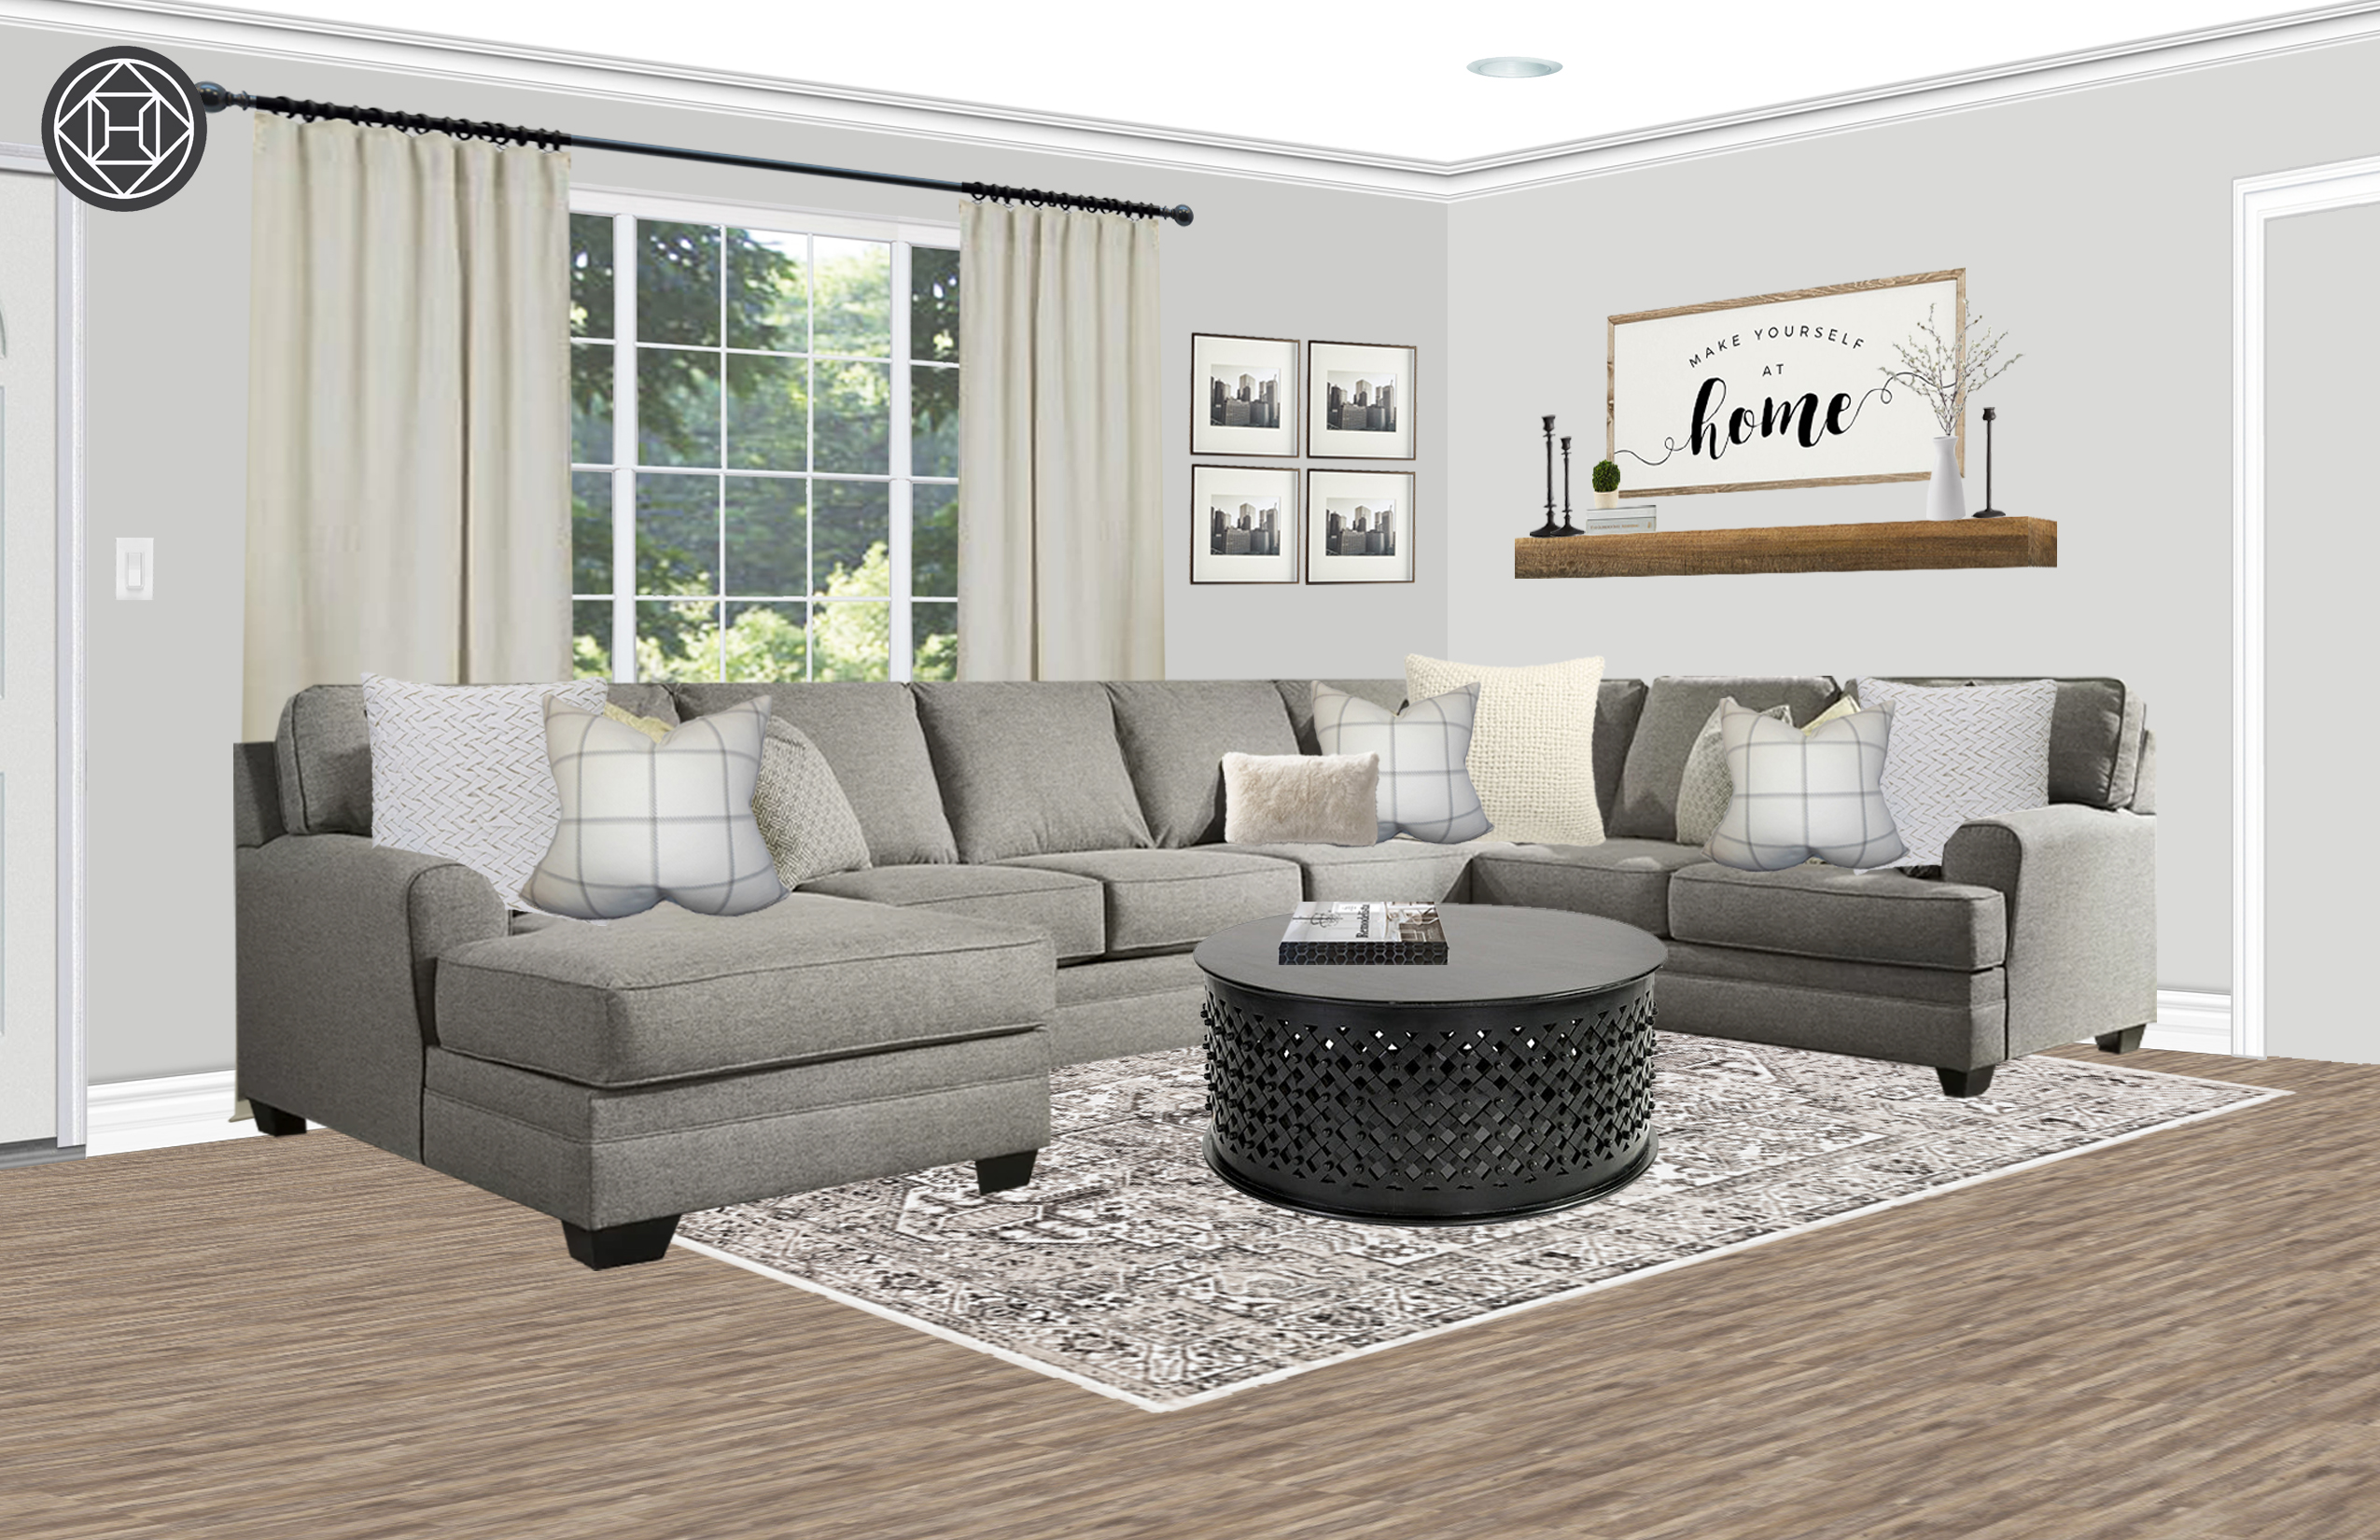 Classic Farmhouse Transitional Living Room Design By